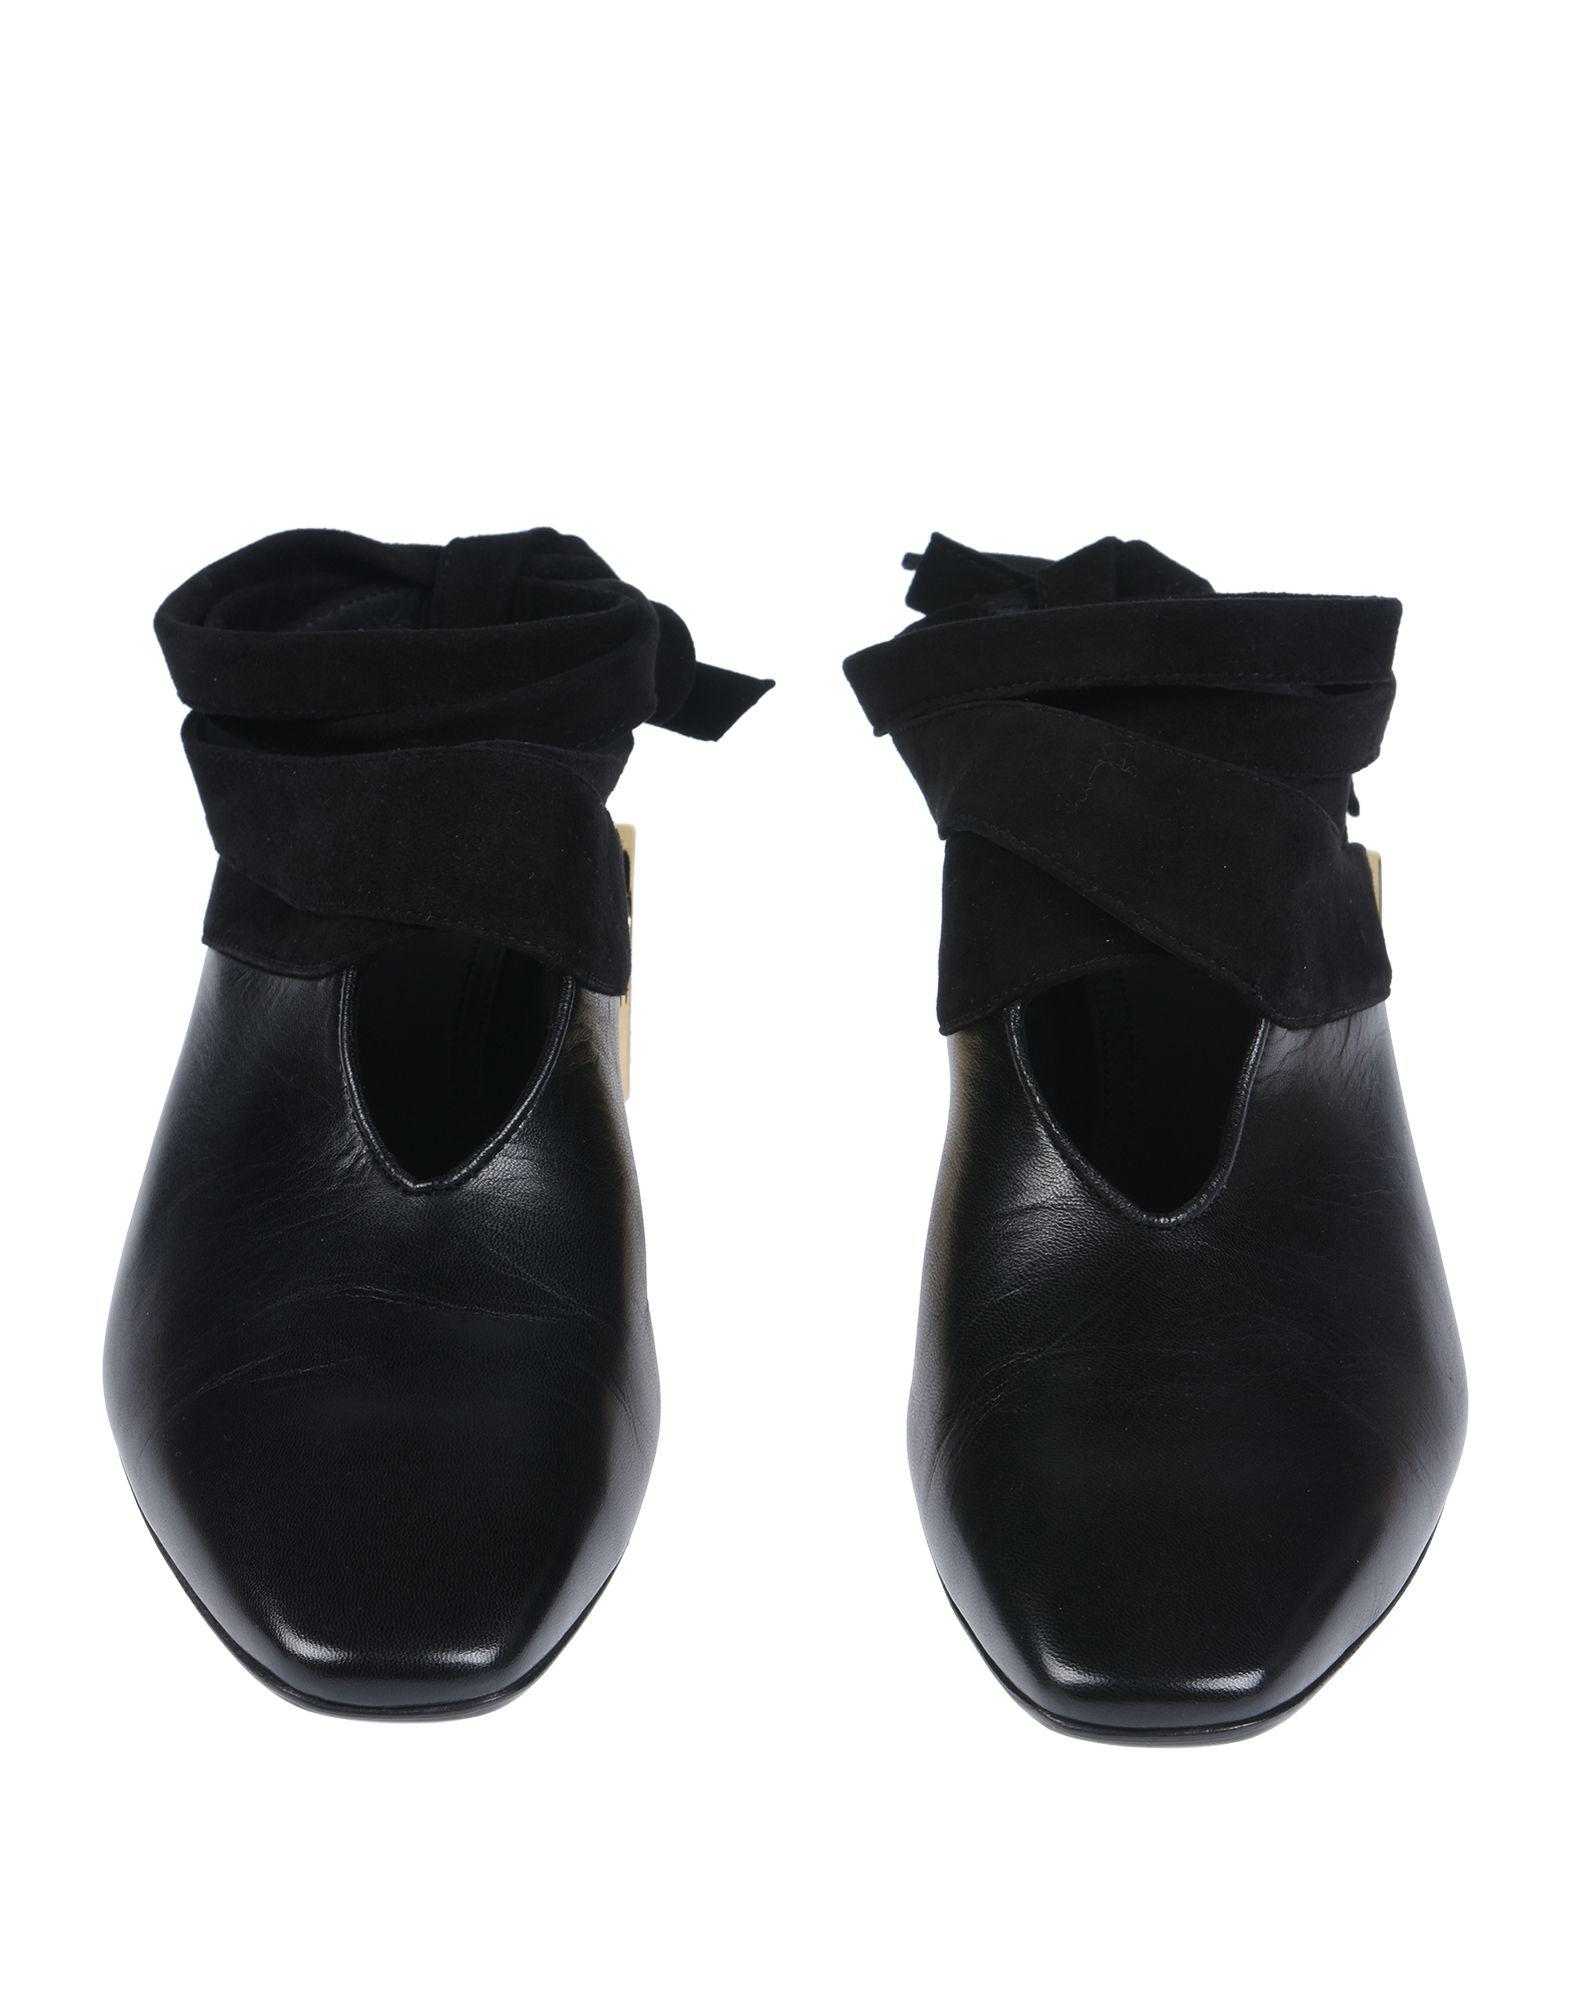 JW Anderson Leather Chain Loafer Mules in Black - Lyst